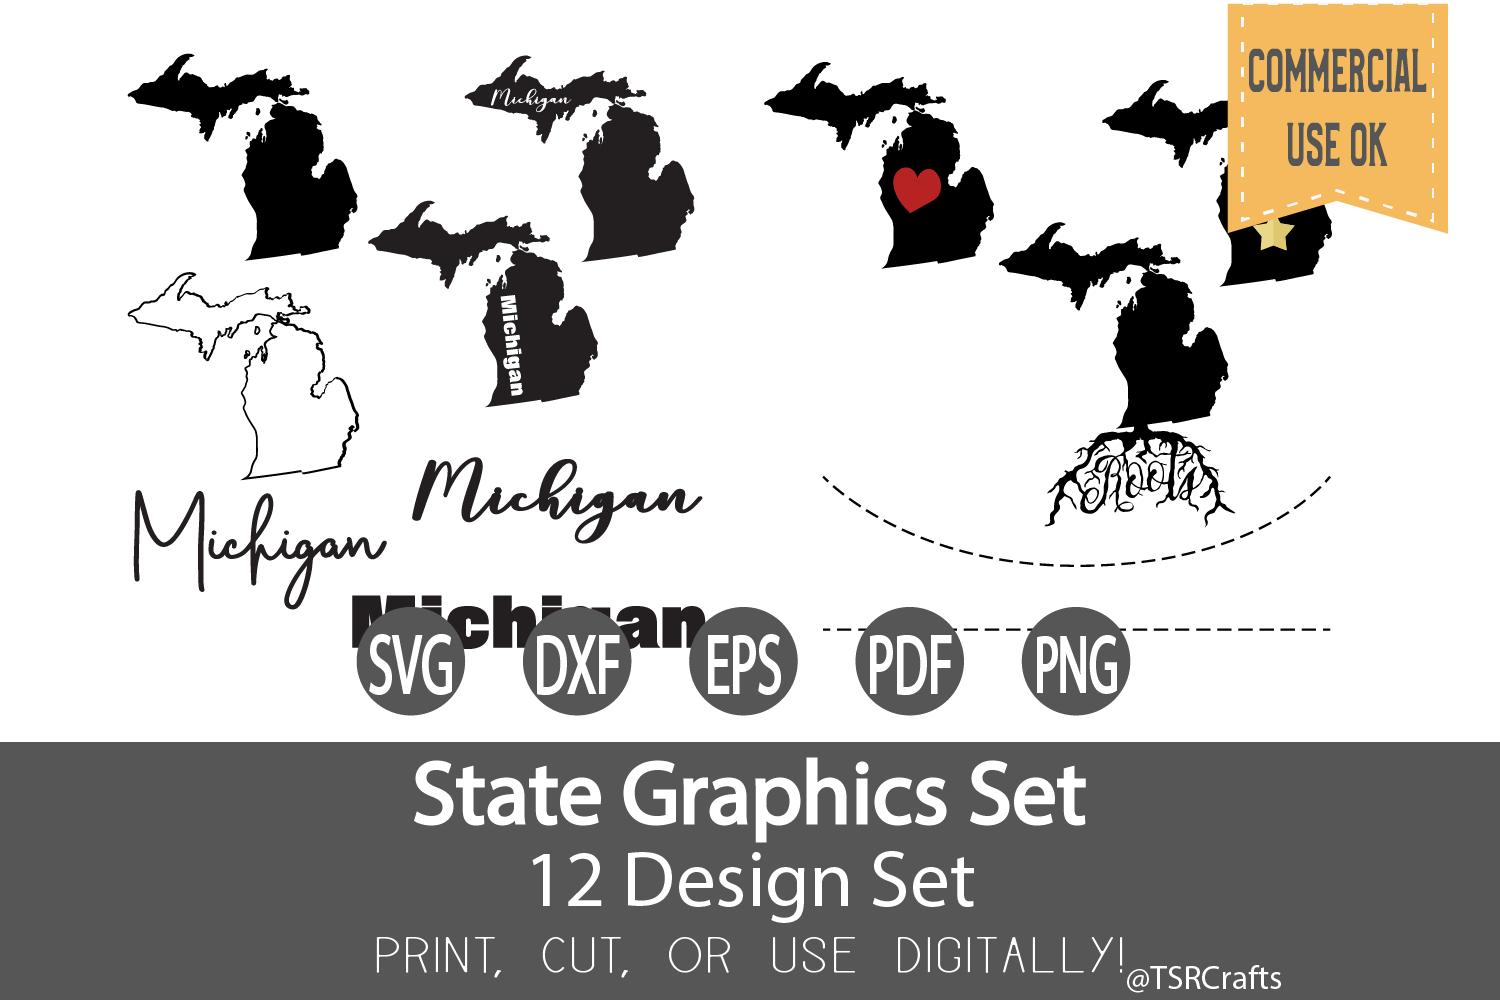 Michigan State Graphics Set - Clip Art and Digital Cut example image 1